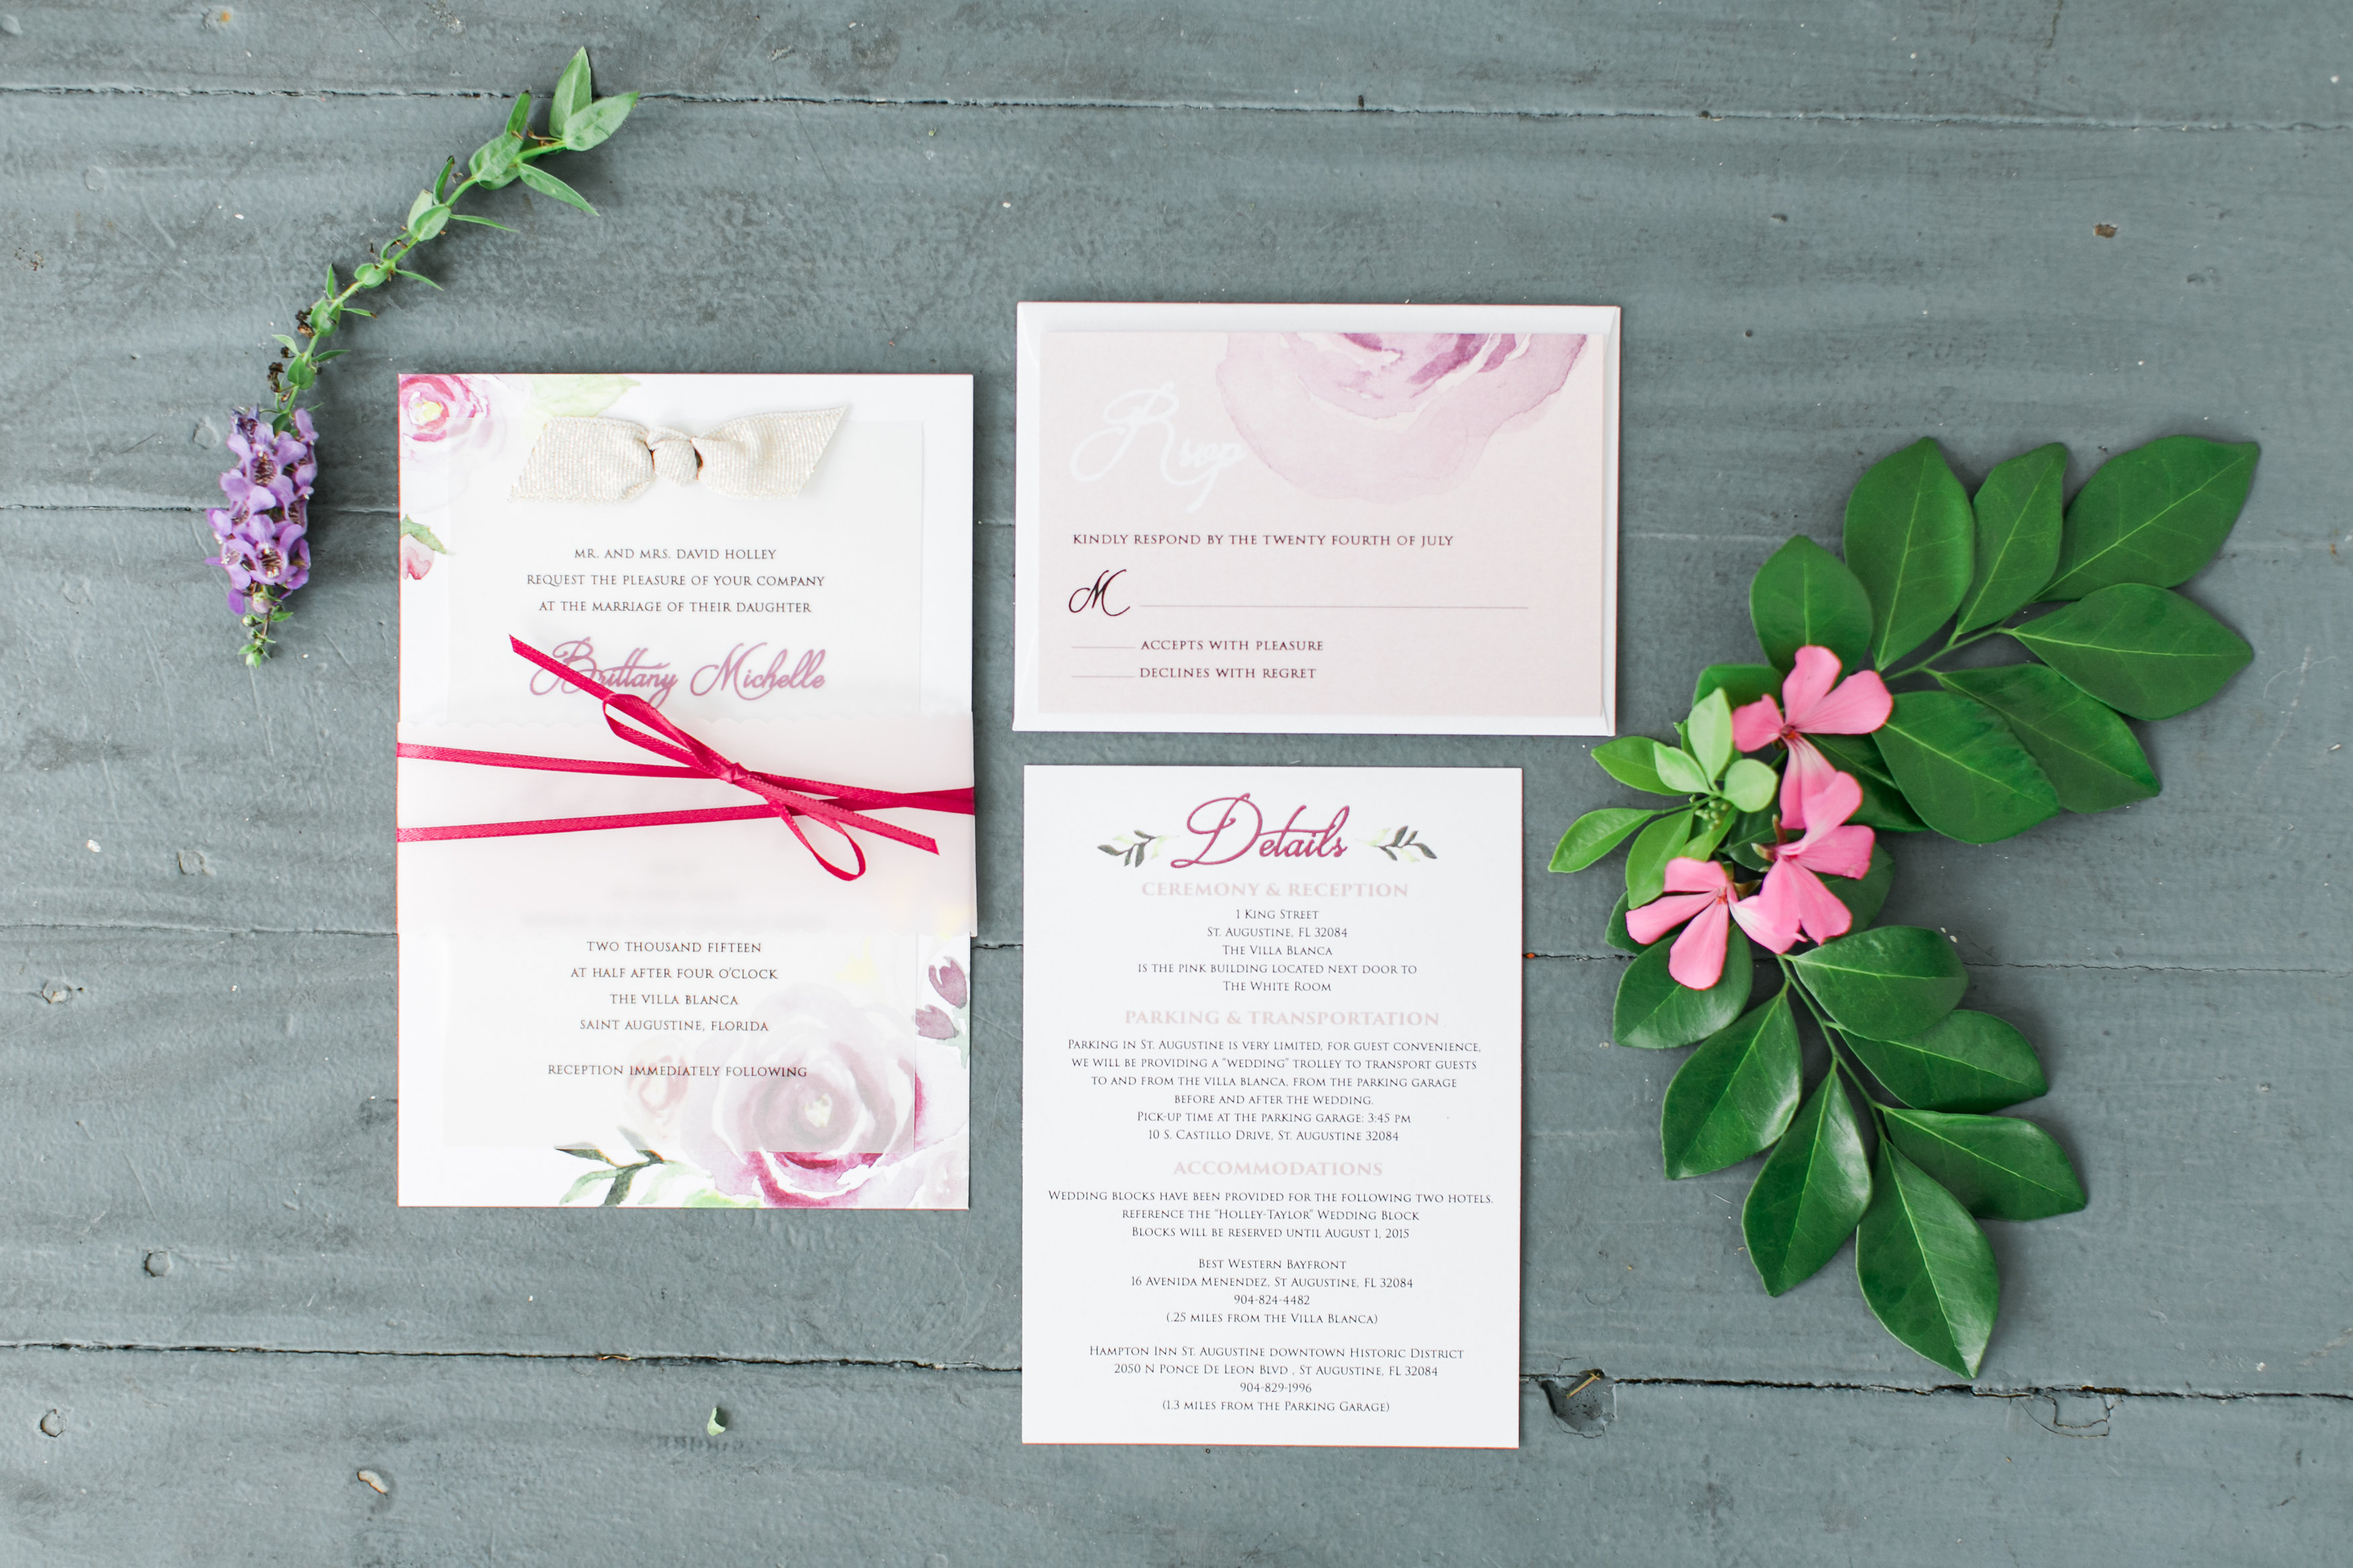 Their invitation perfectly photographed